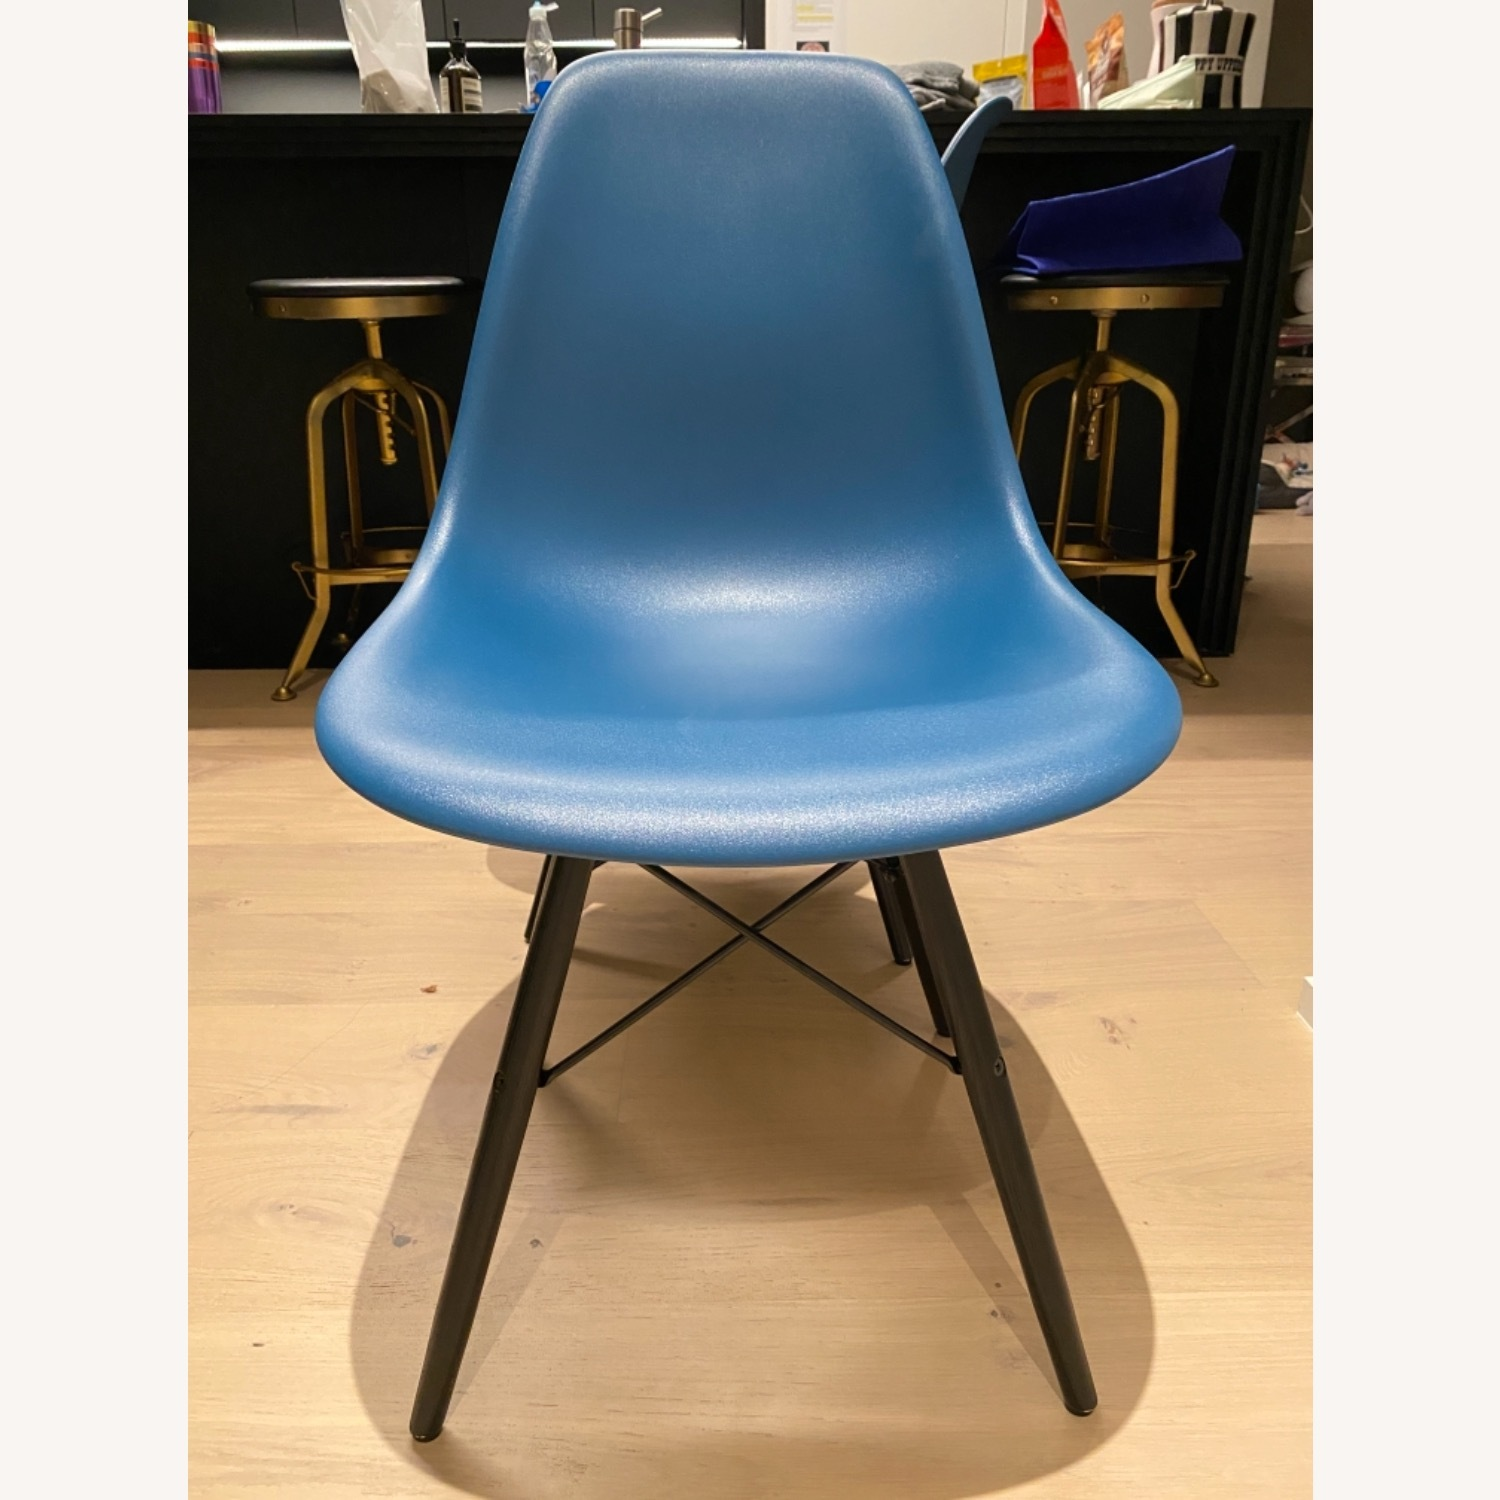 4 x Herman Miller Eames Molded Plastic Side Chair - image-11